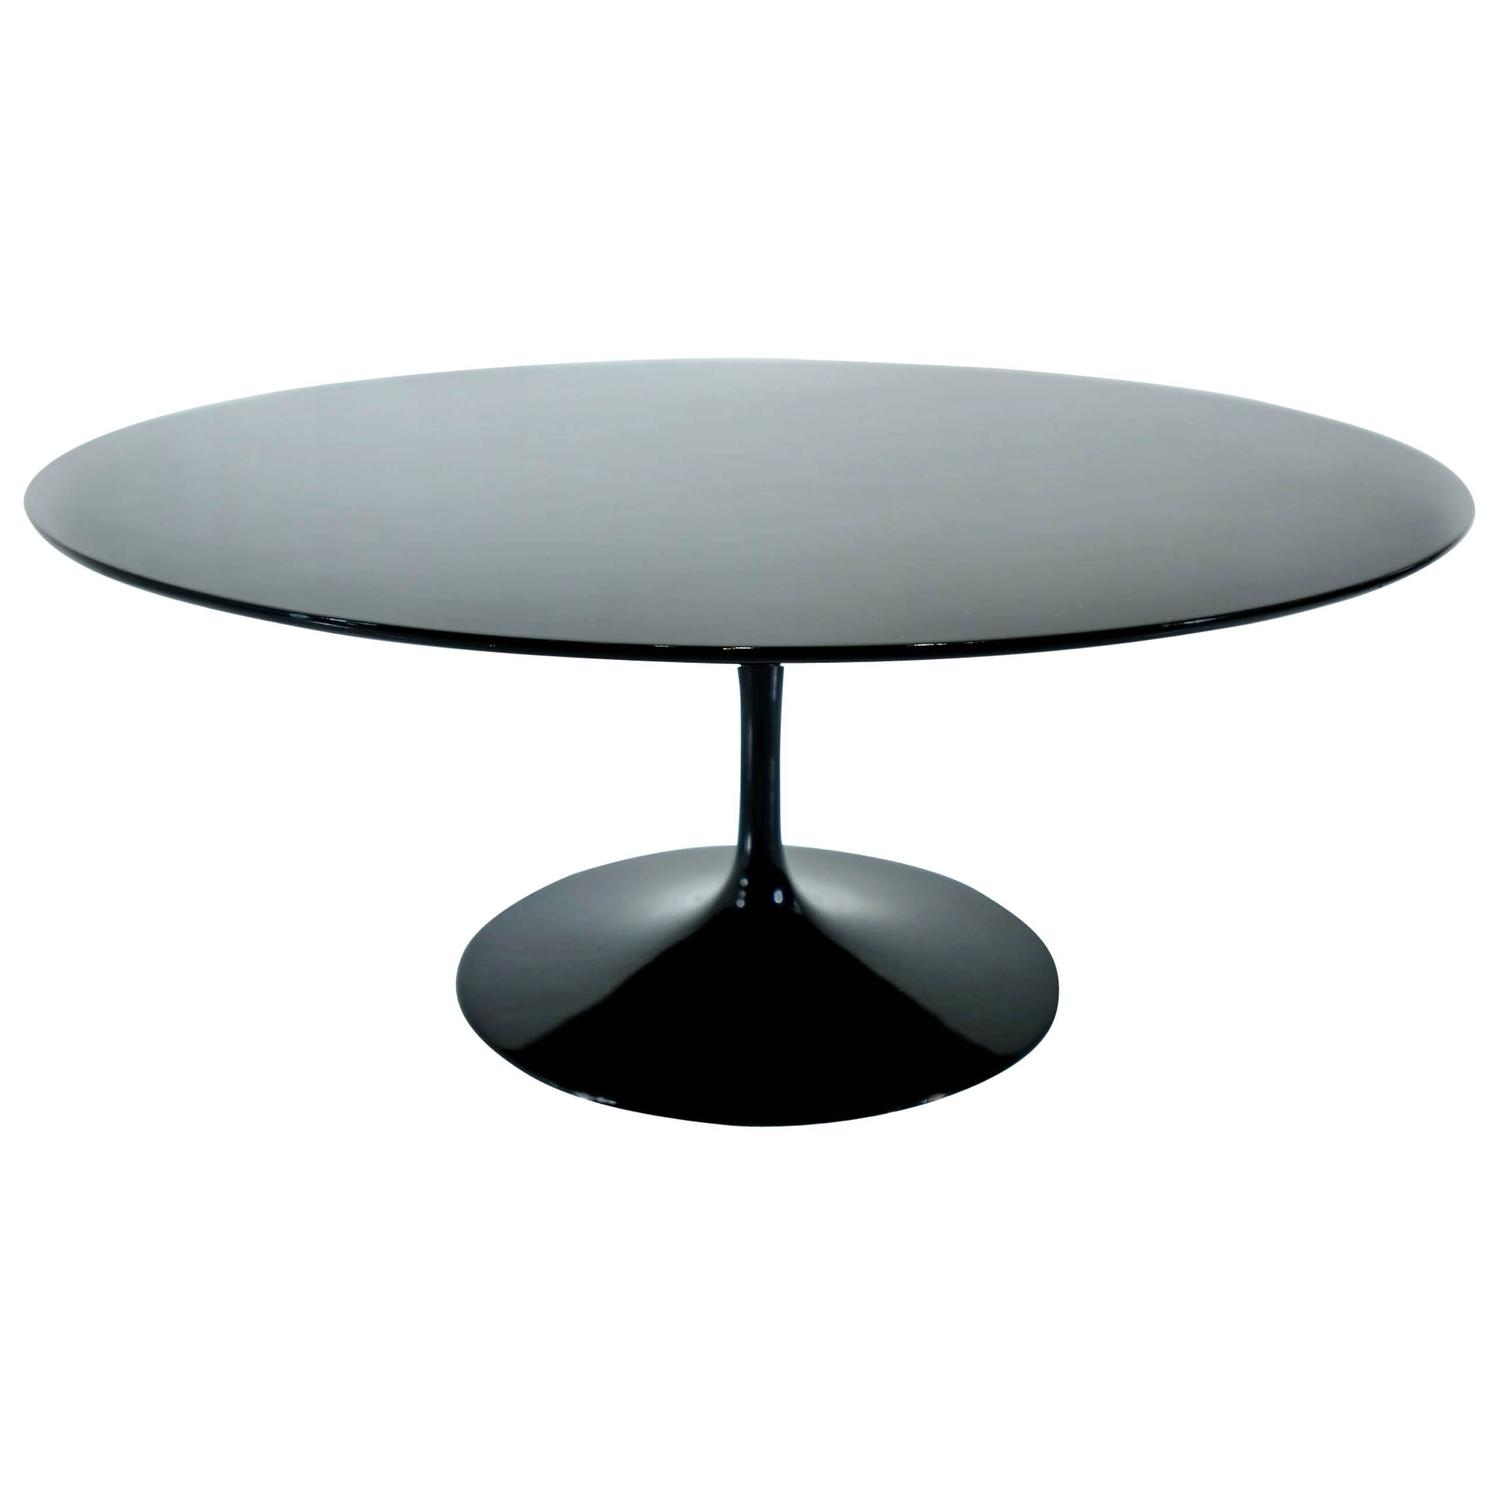 36 Tulip Table Eero Saarinen Tulip Round Coffee Table At 1stdibs